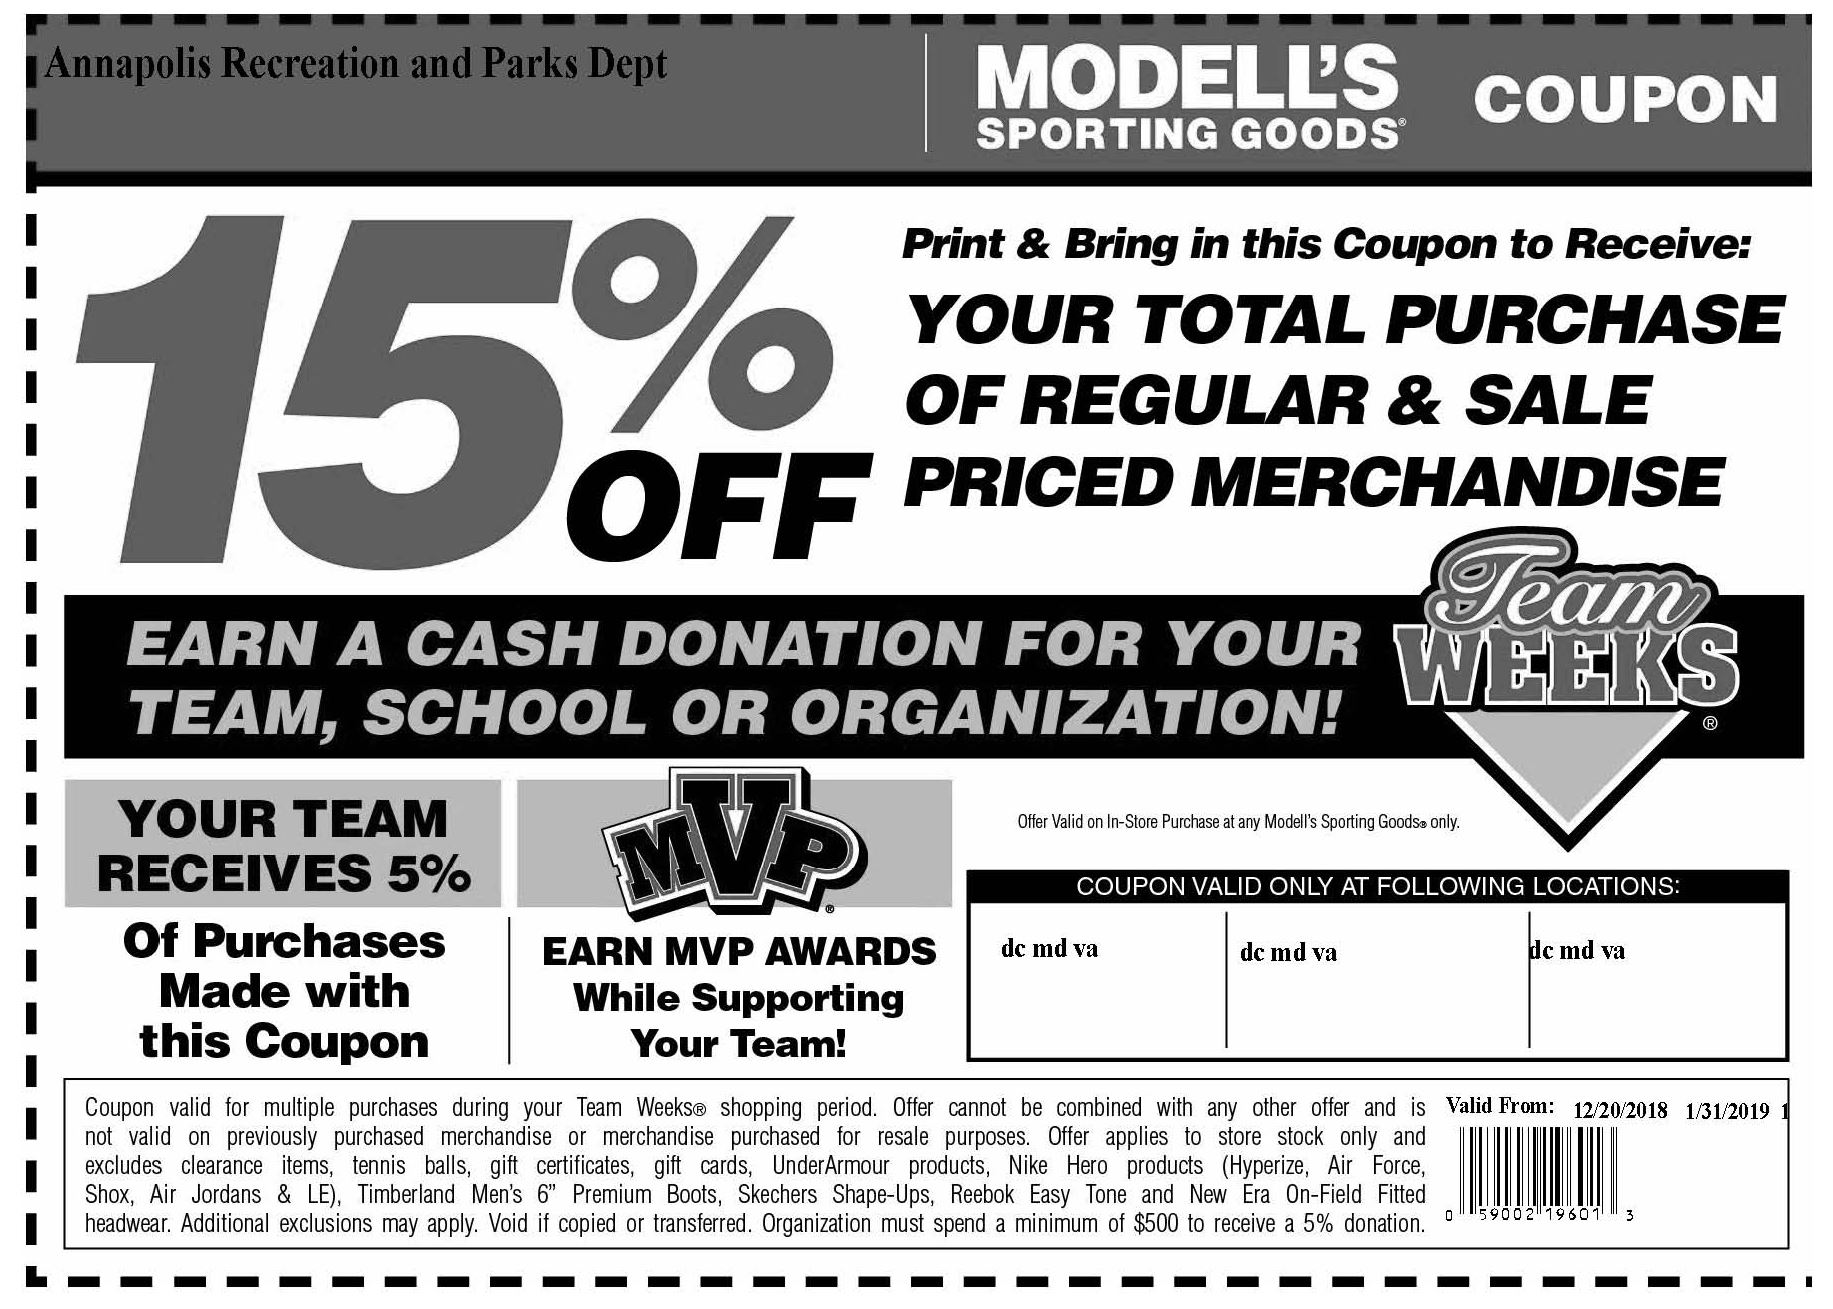 Modells Coupon 122018-013119